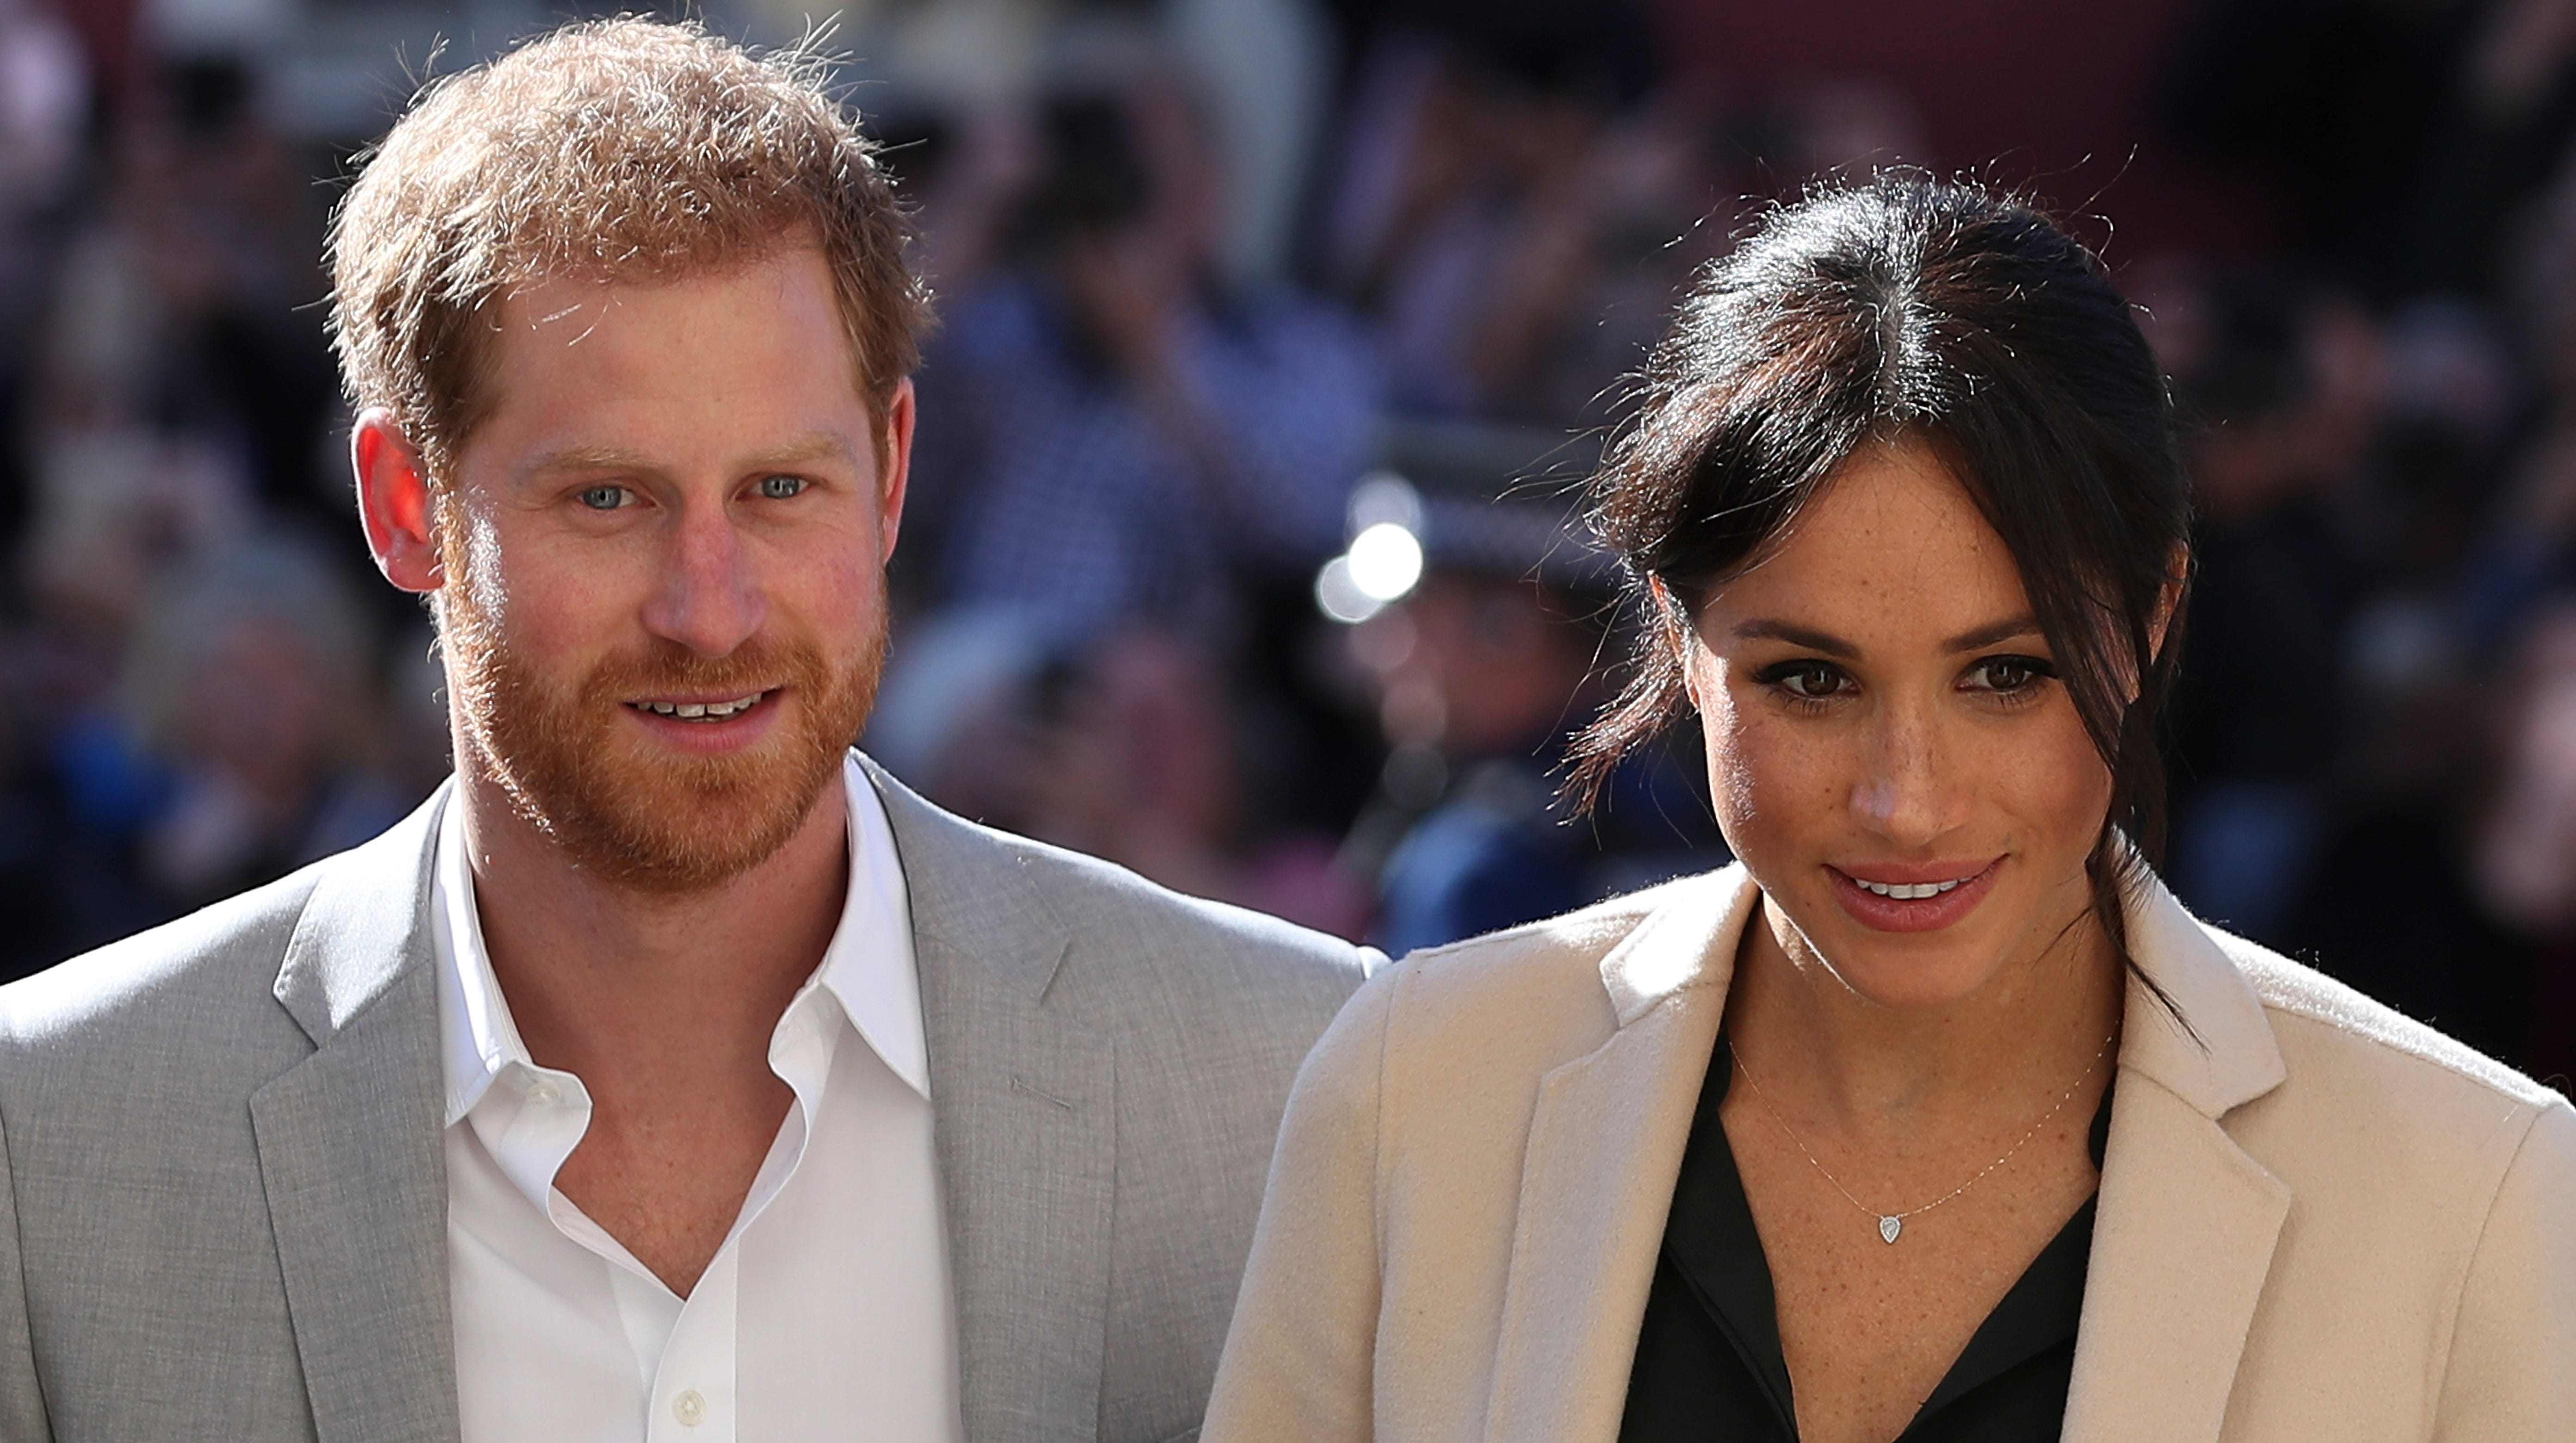 Redheads thrilled about (slim) chance Harry & Meghan's royal baby will be a 'ginger'